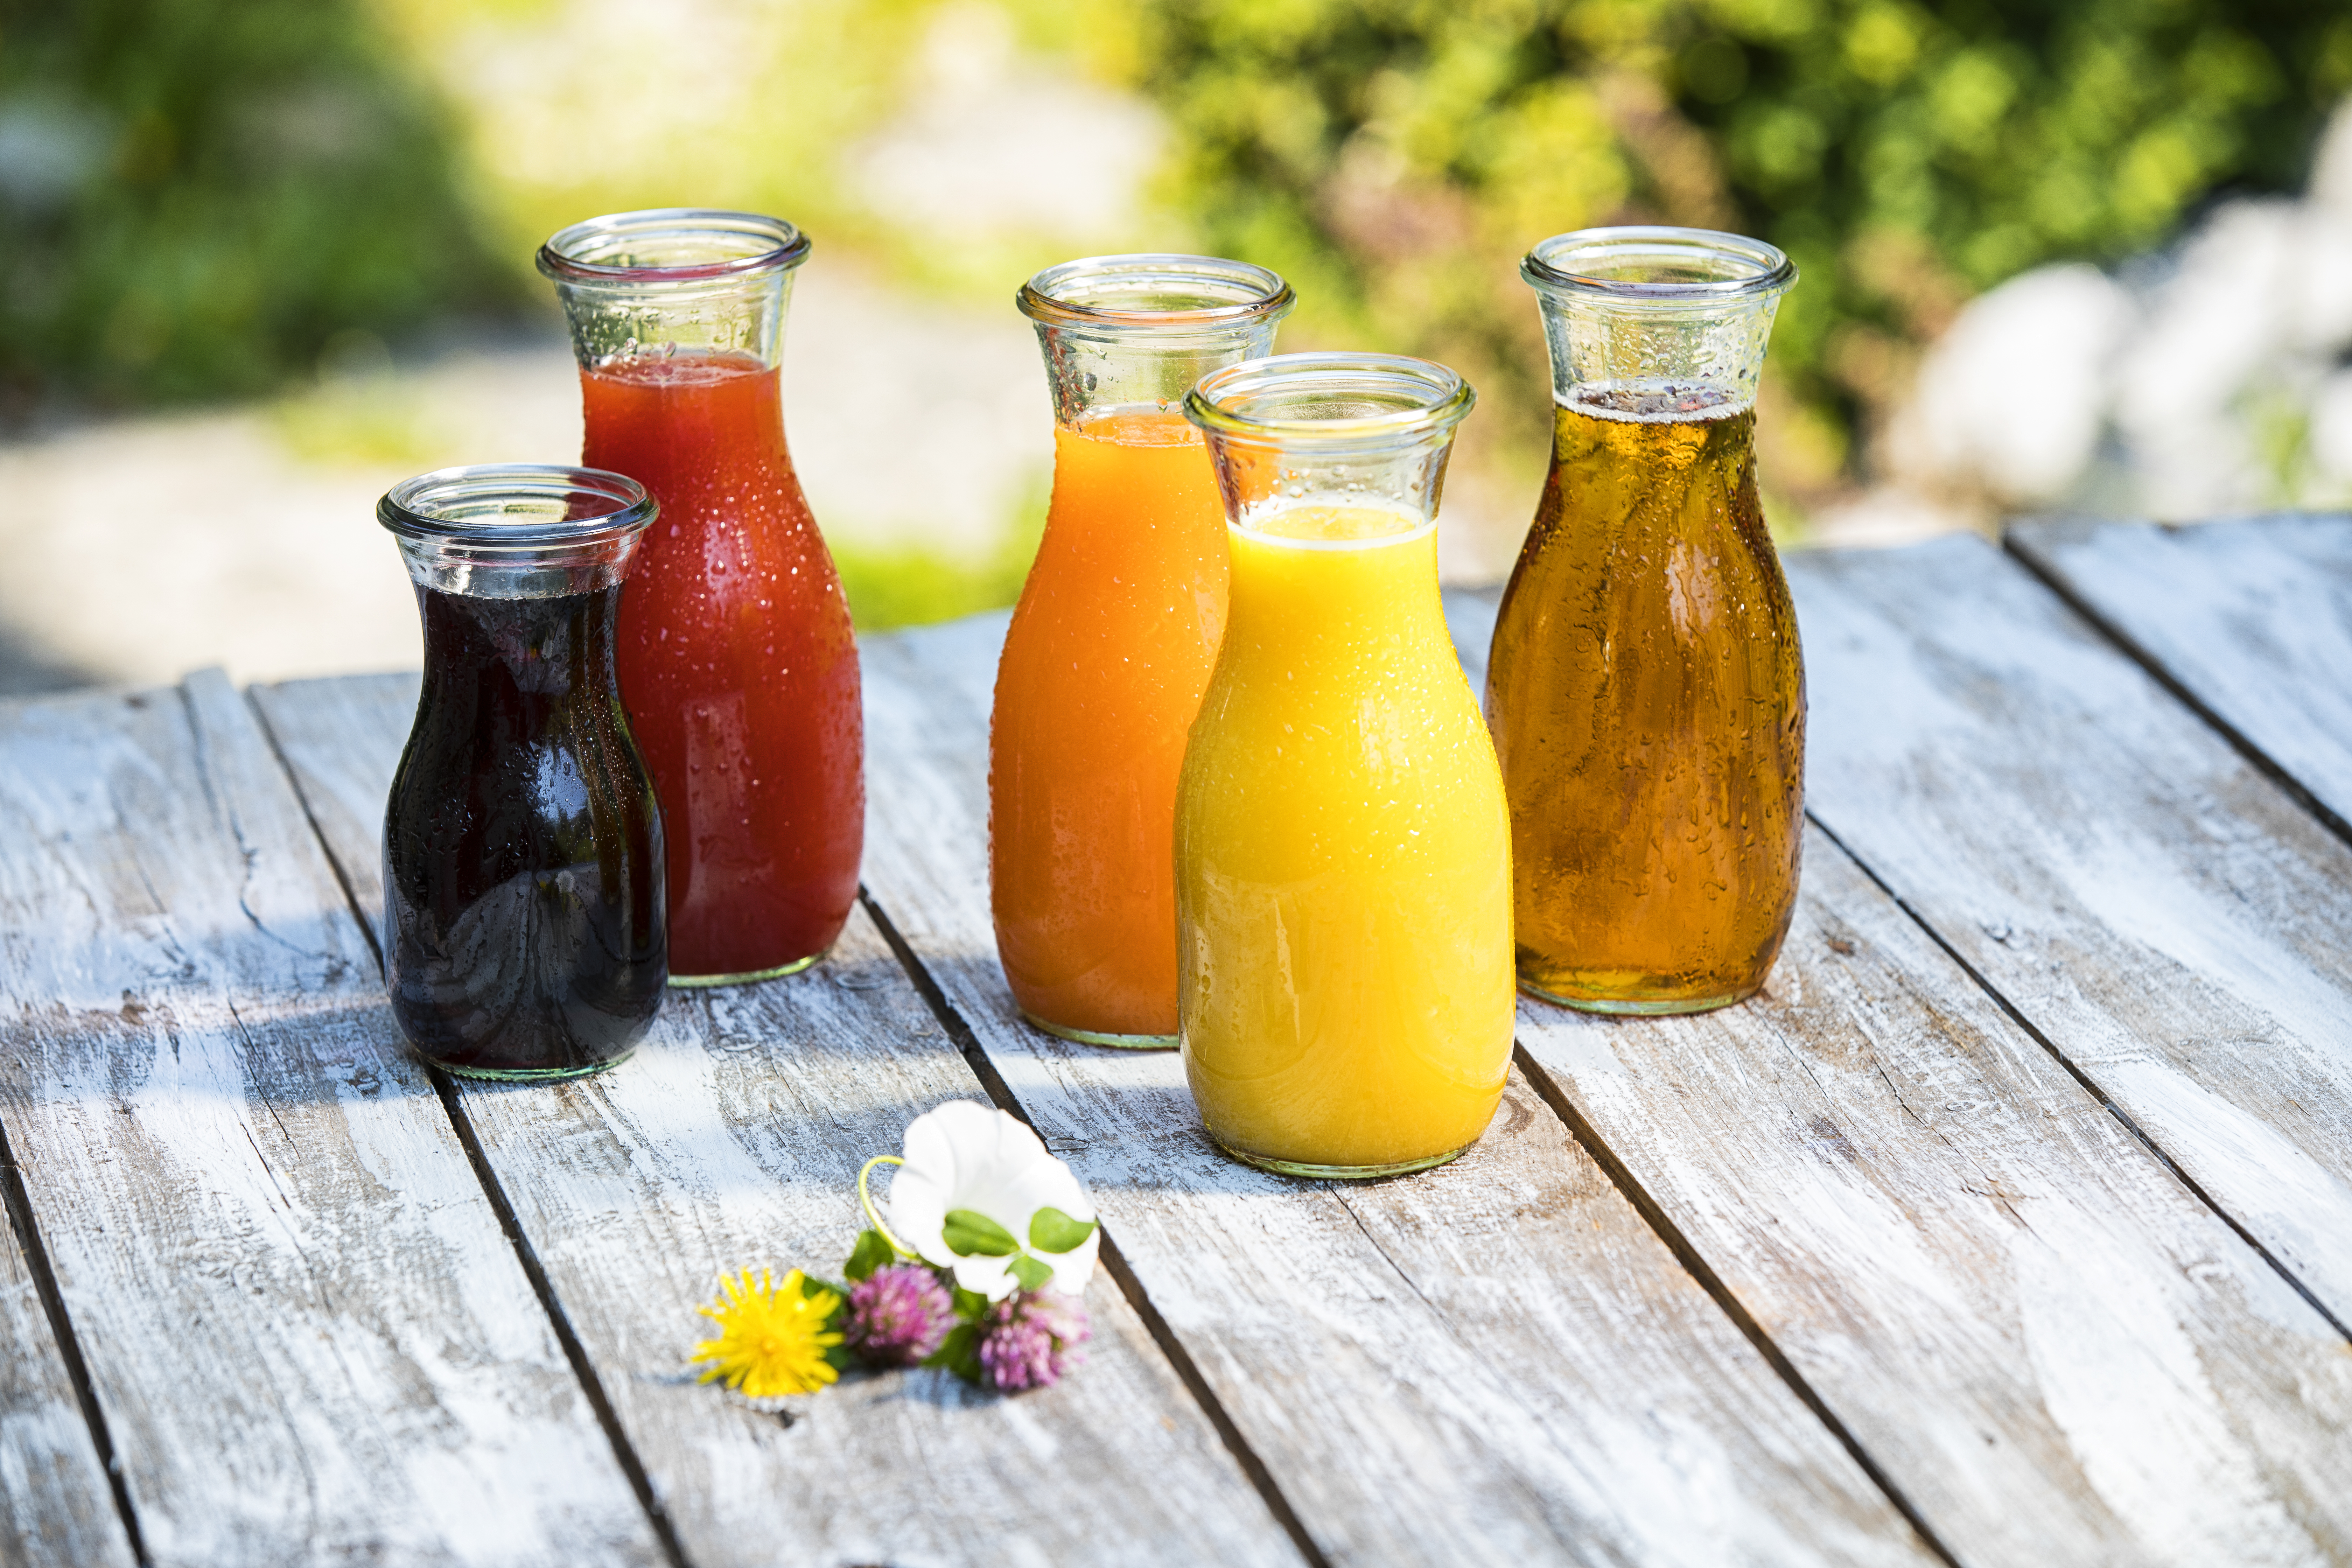 different fruit juices in glass jars